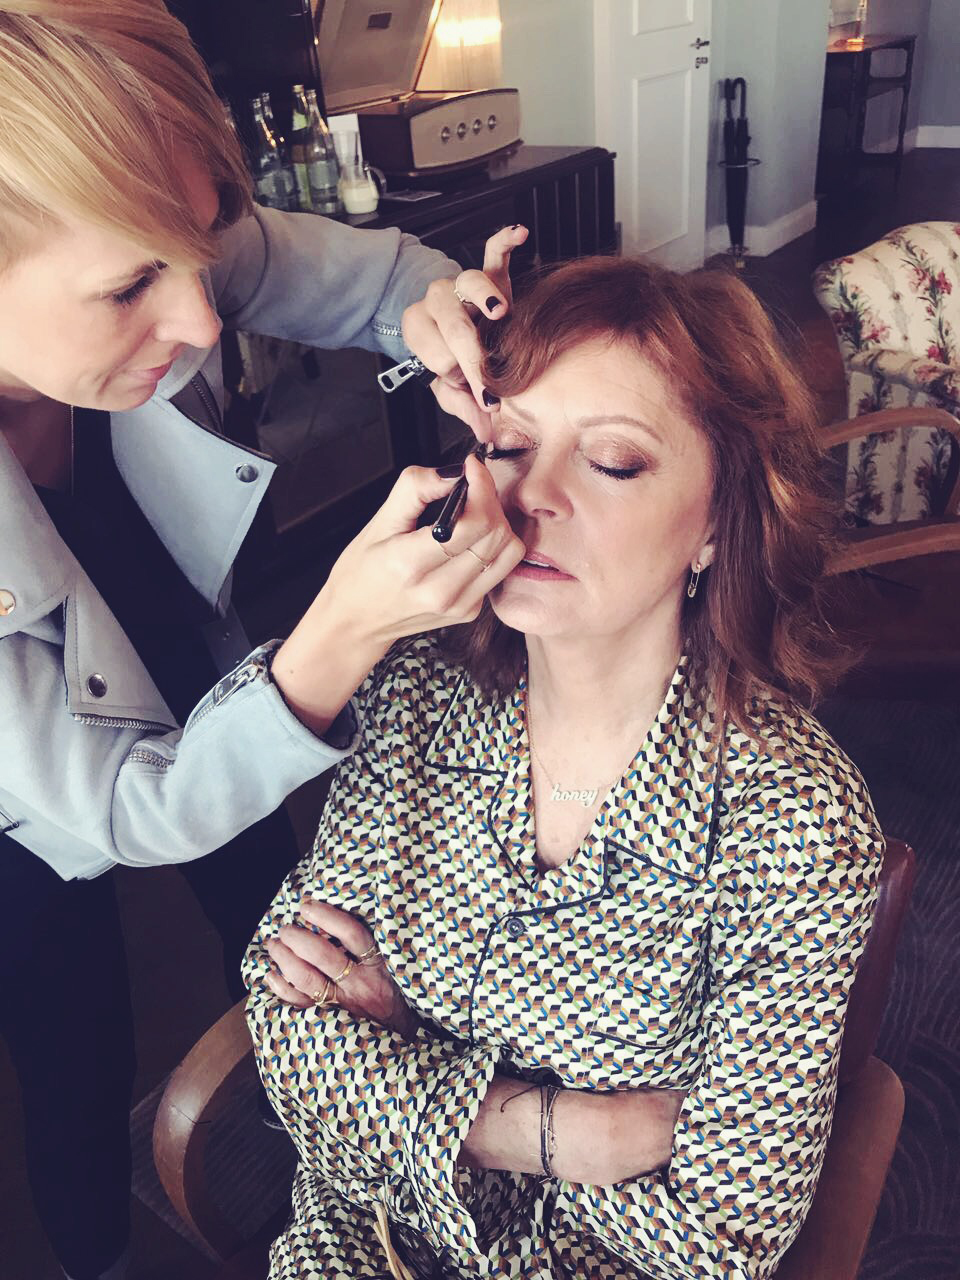 Miriam_jacks_susan_sarandon_make_up_set_artist_soho_house_berlin